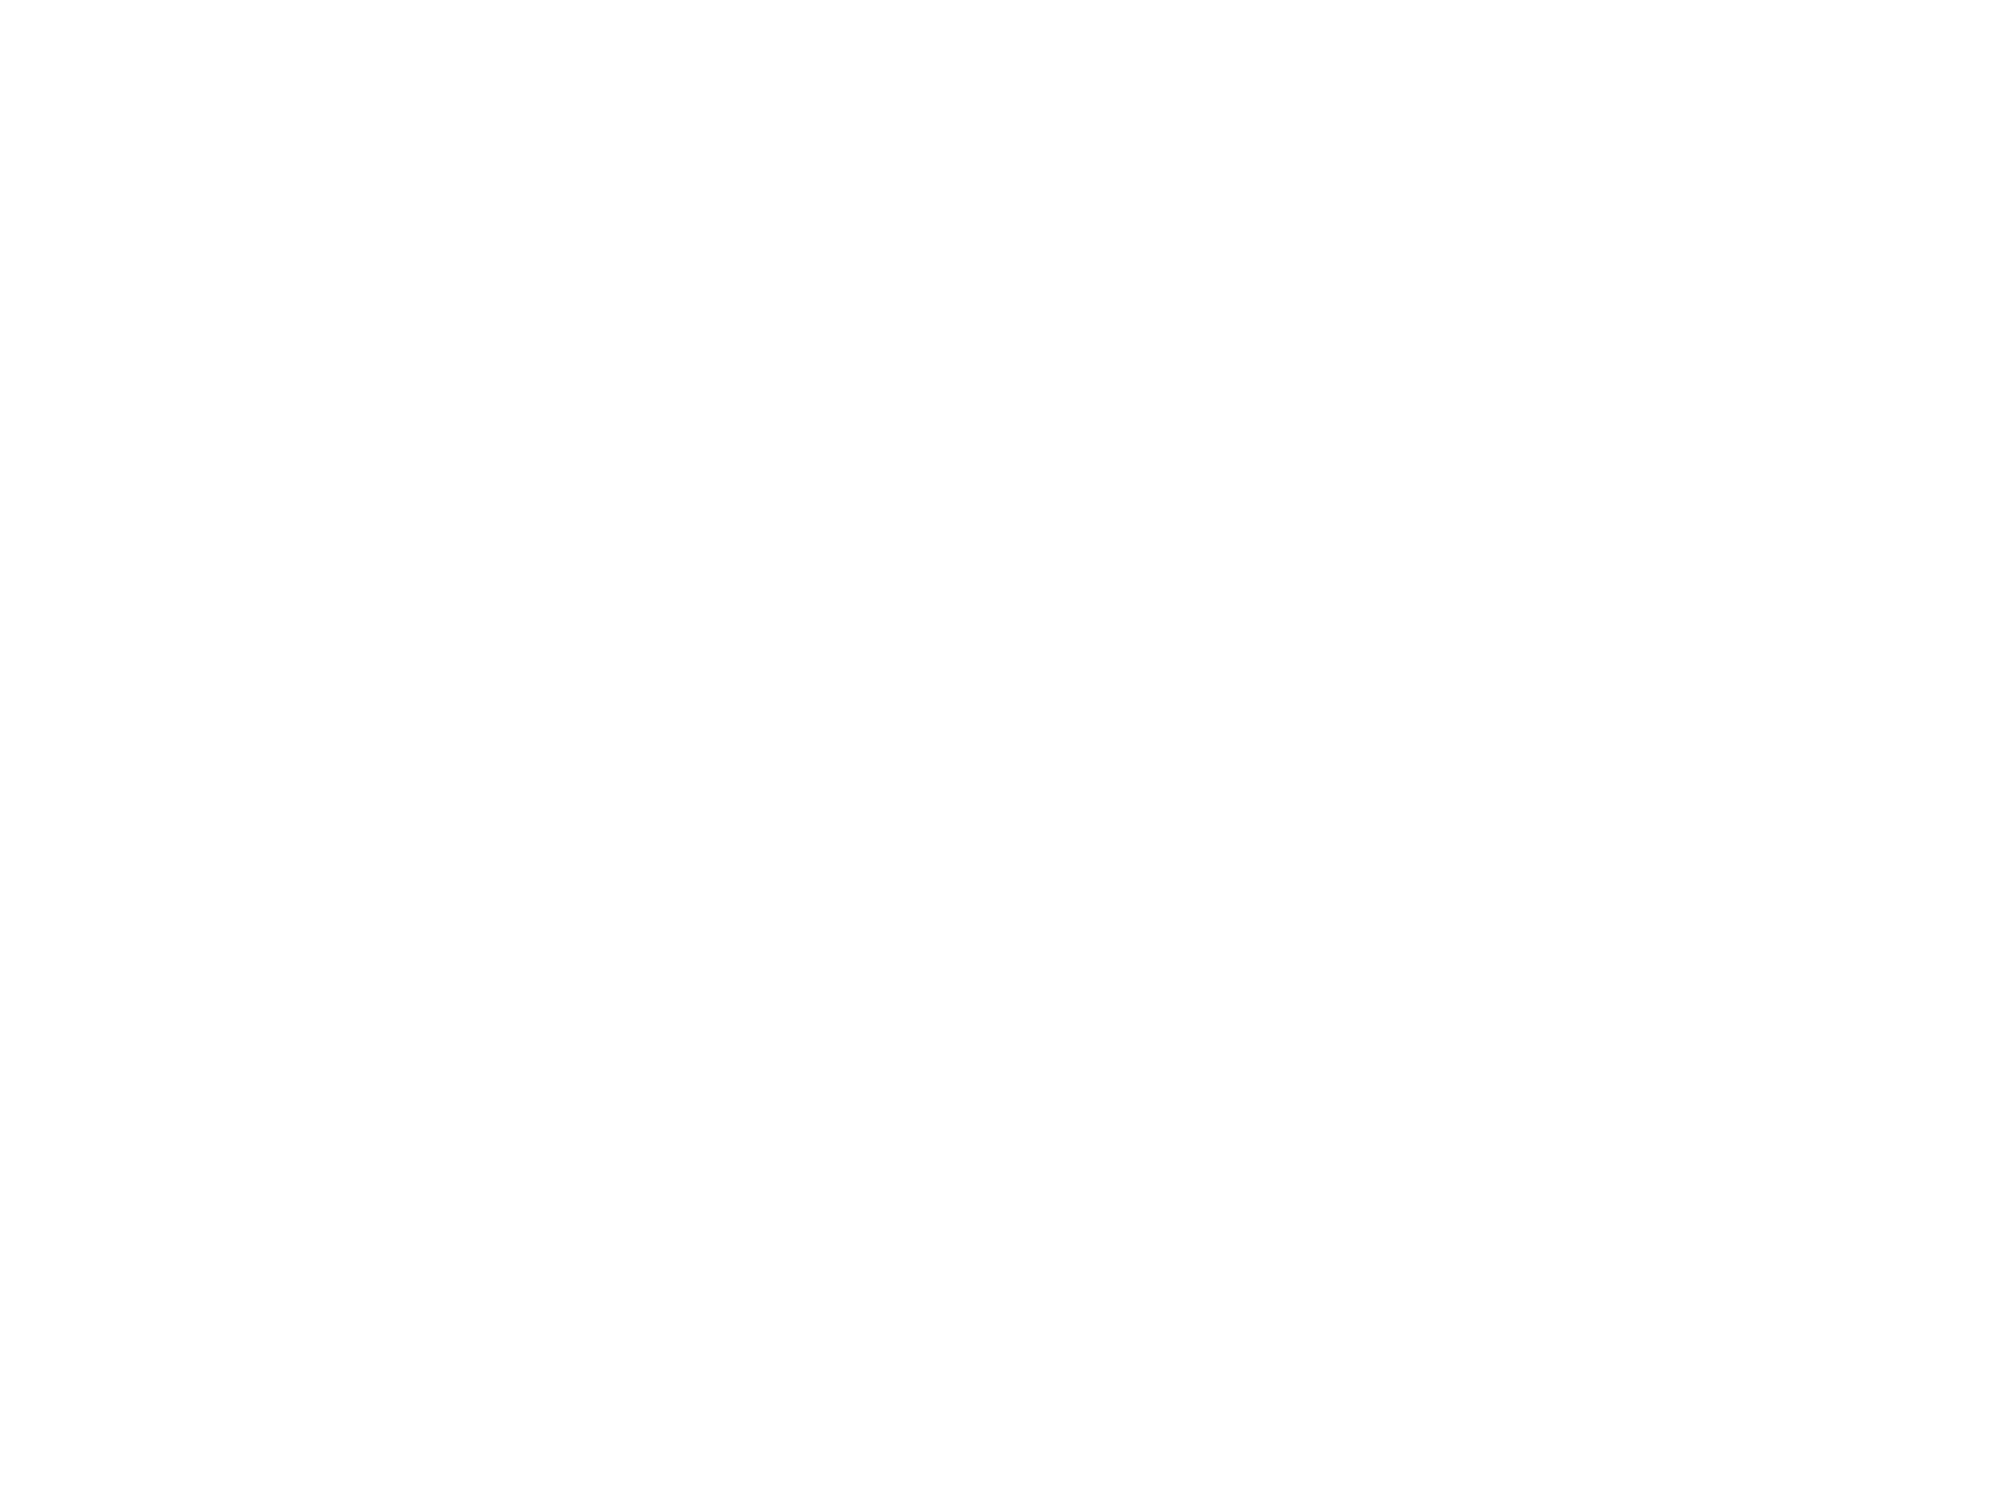 Yoder's Storage Sheds | White Logo | Colorado | Portable Buildings